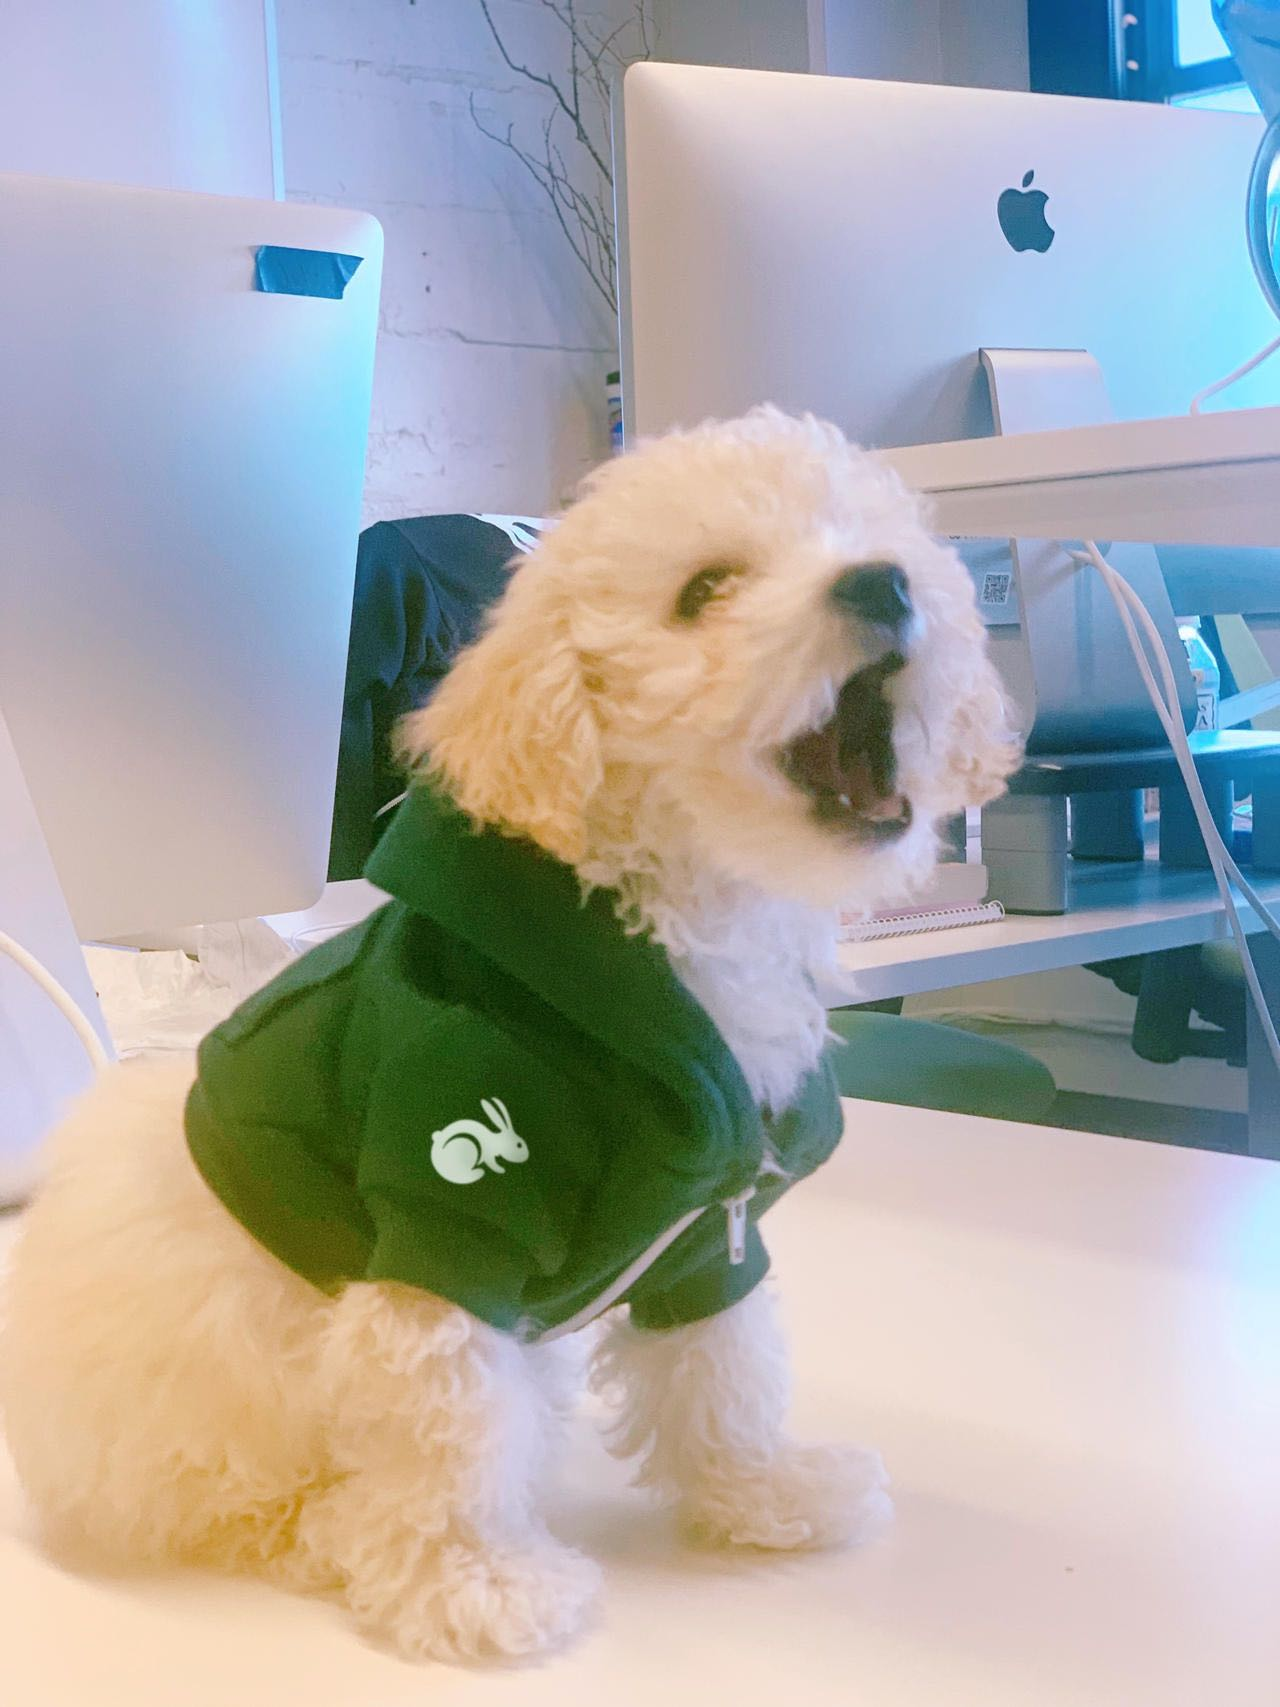 A small white dog wearing a green hoodie with the TaskRabbit logo sitting on an employee's desk posing for a photo with its mouth open.